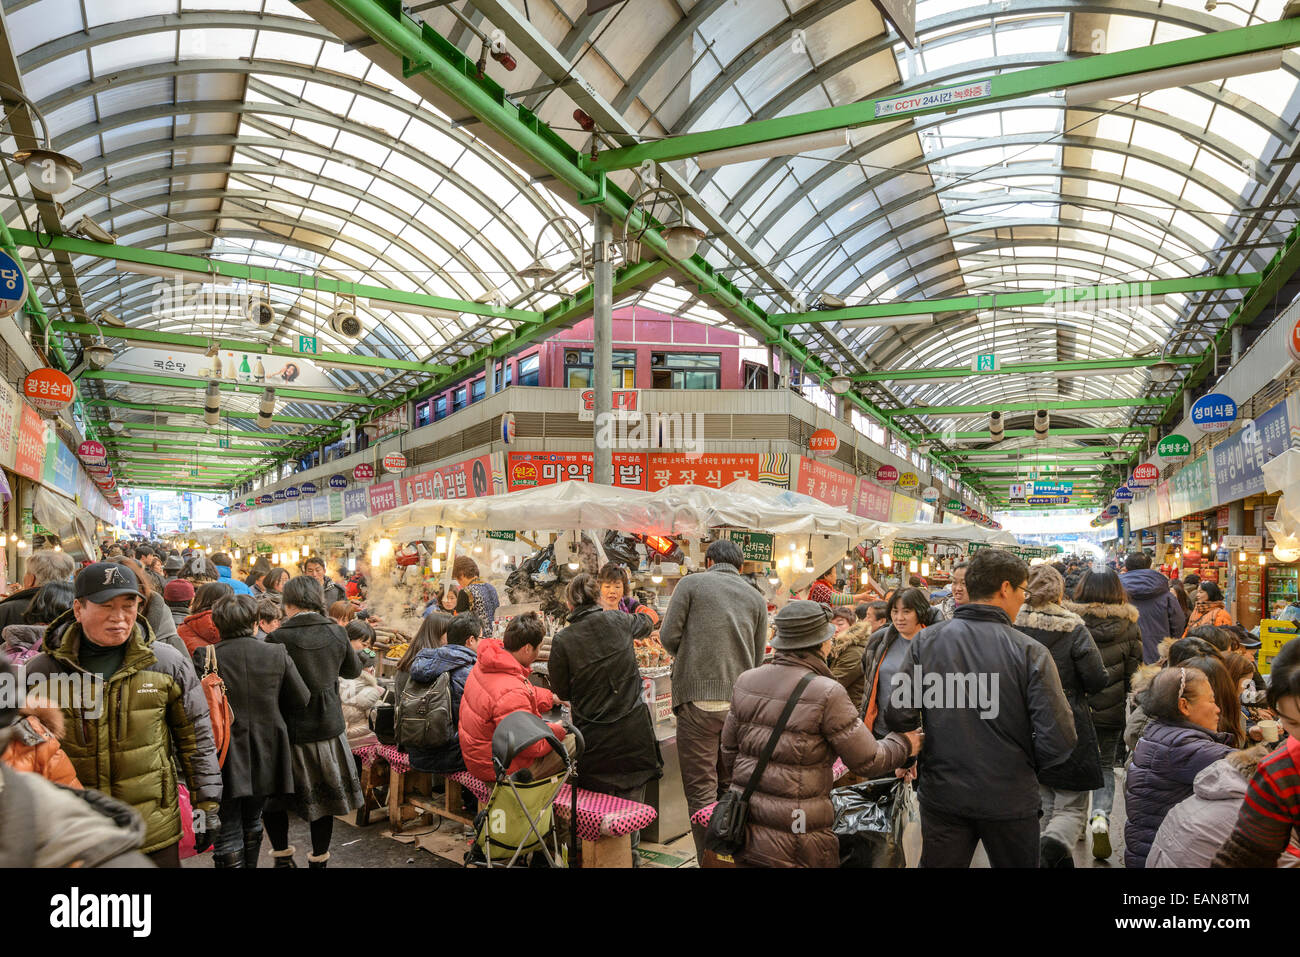 Shoppers in Seoul, South Korea pass through Gwangjang Traditional Market. - Stock Image